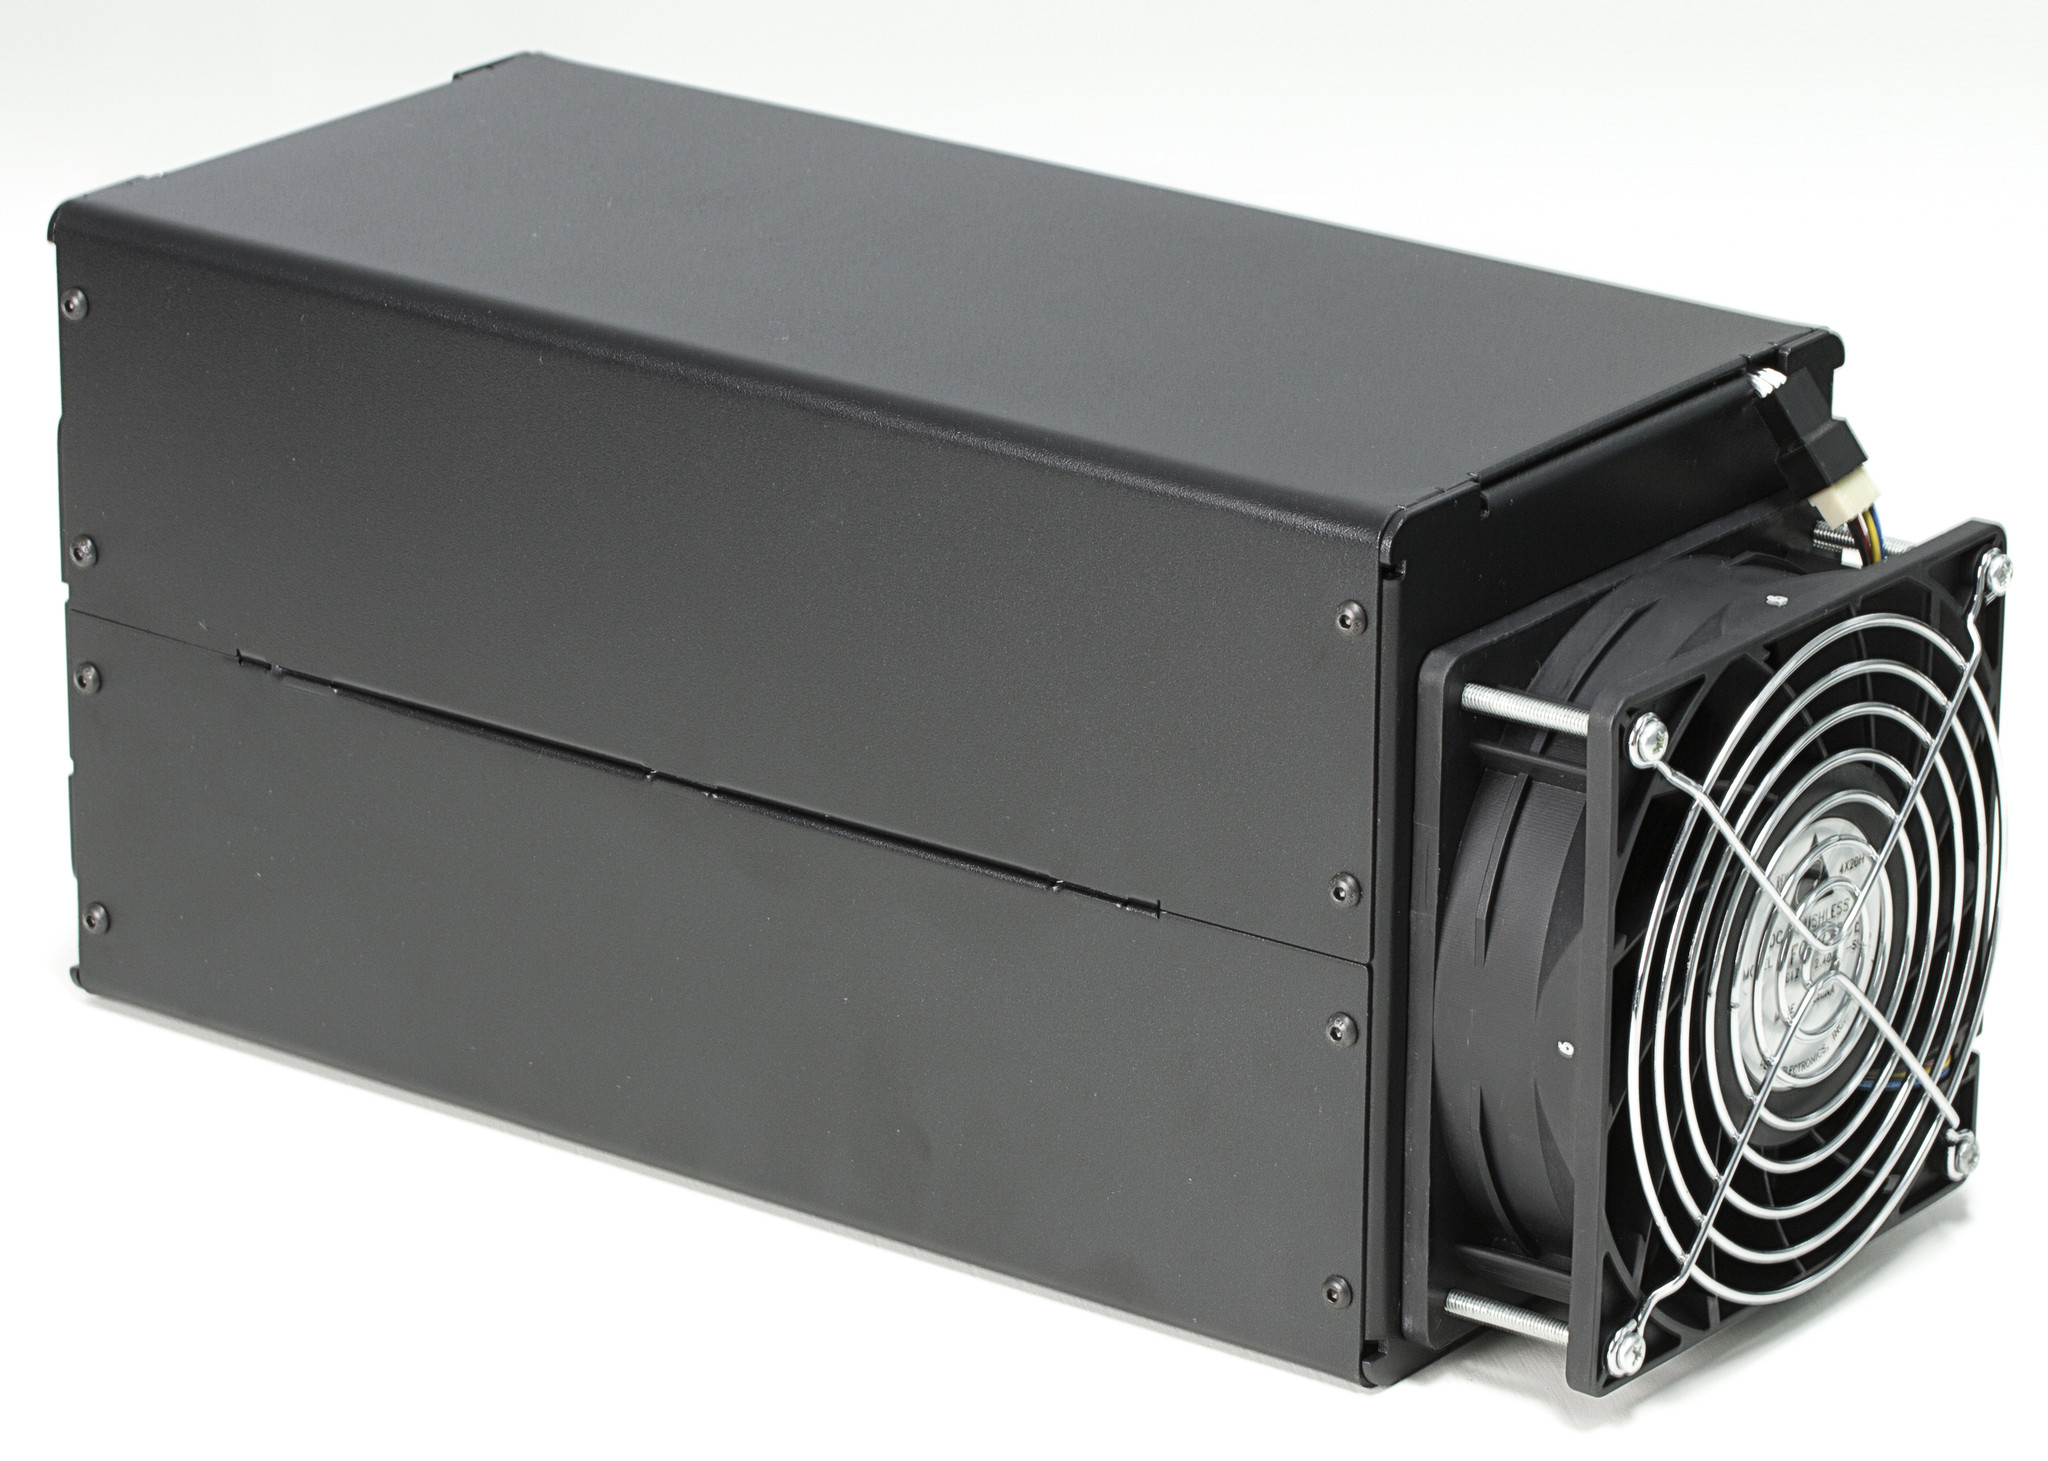 Best Bitcoin Mining Hardware For 2018